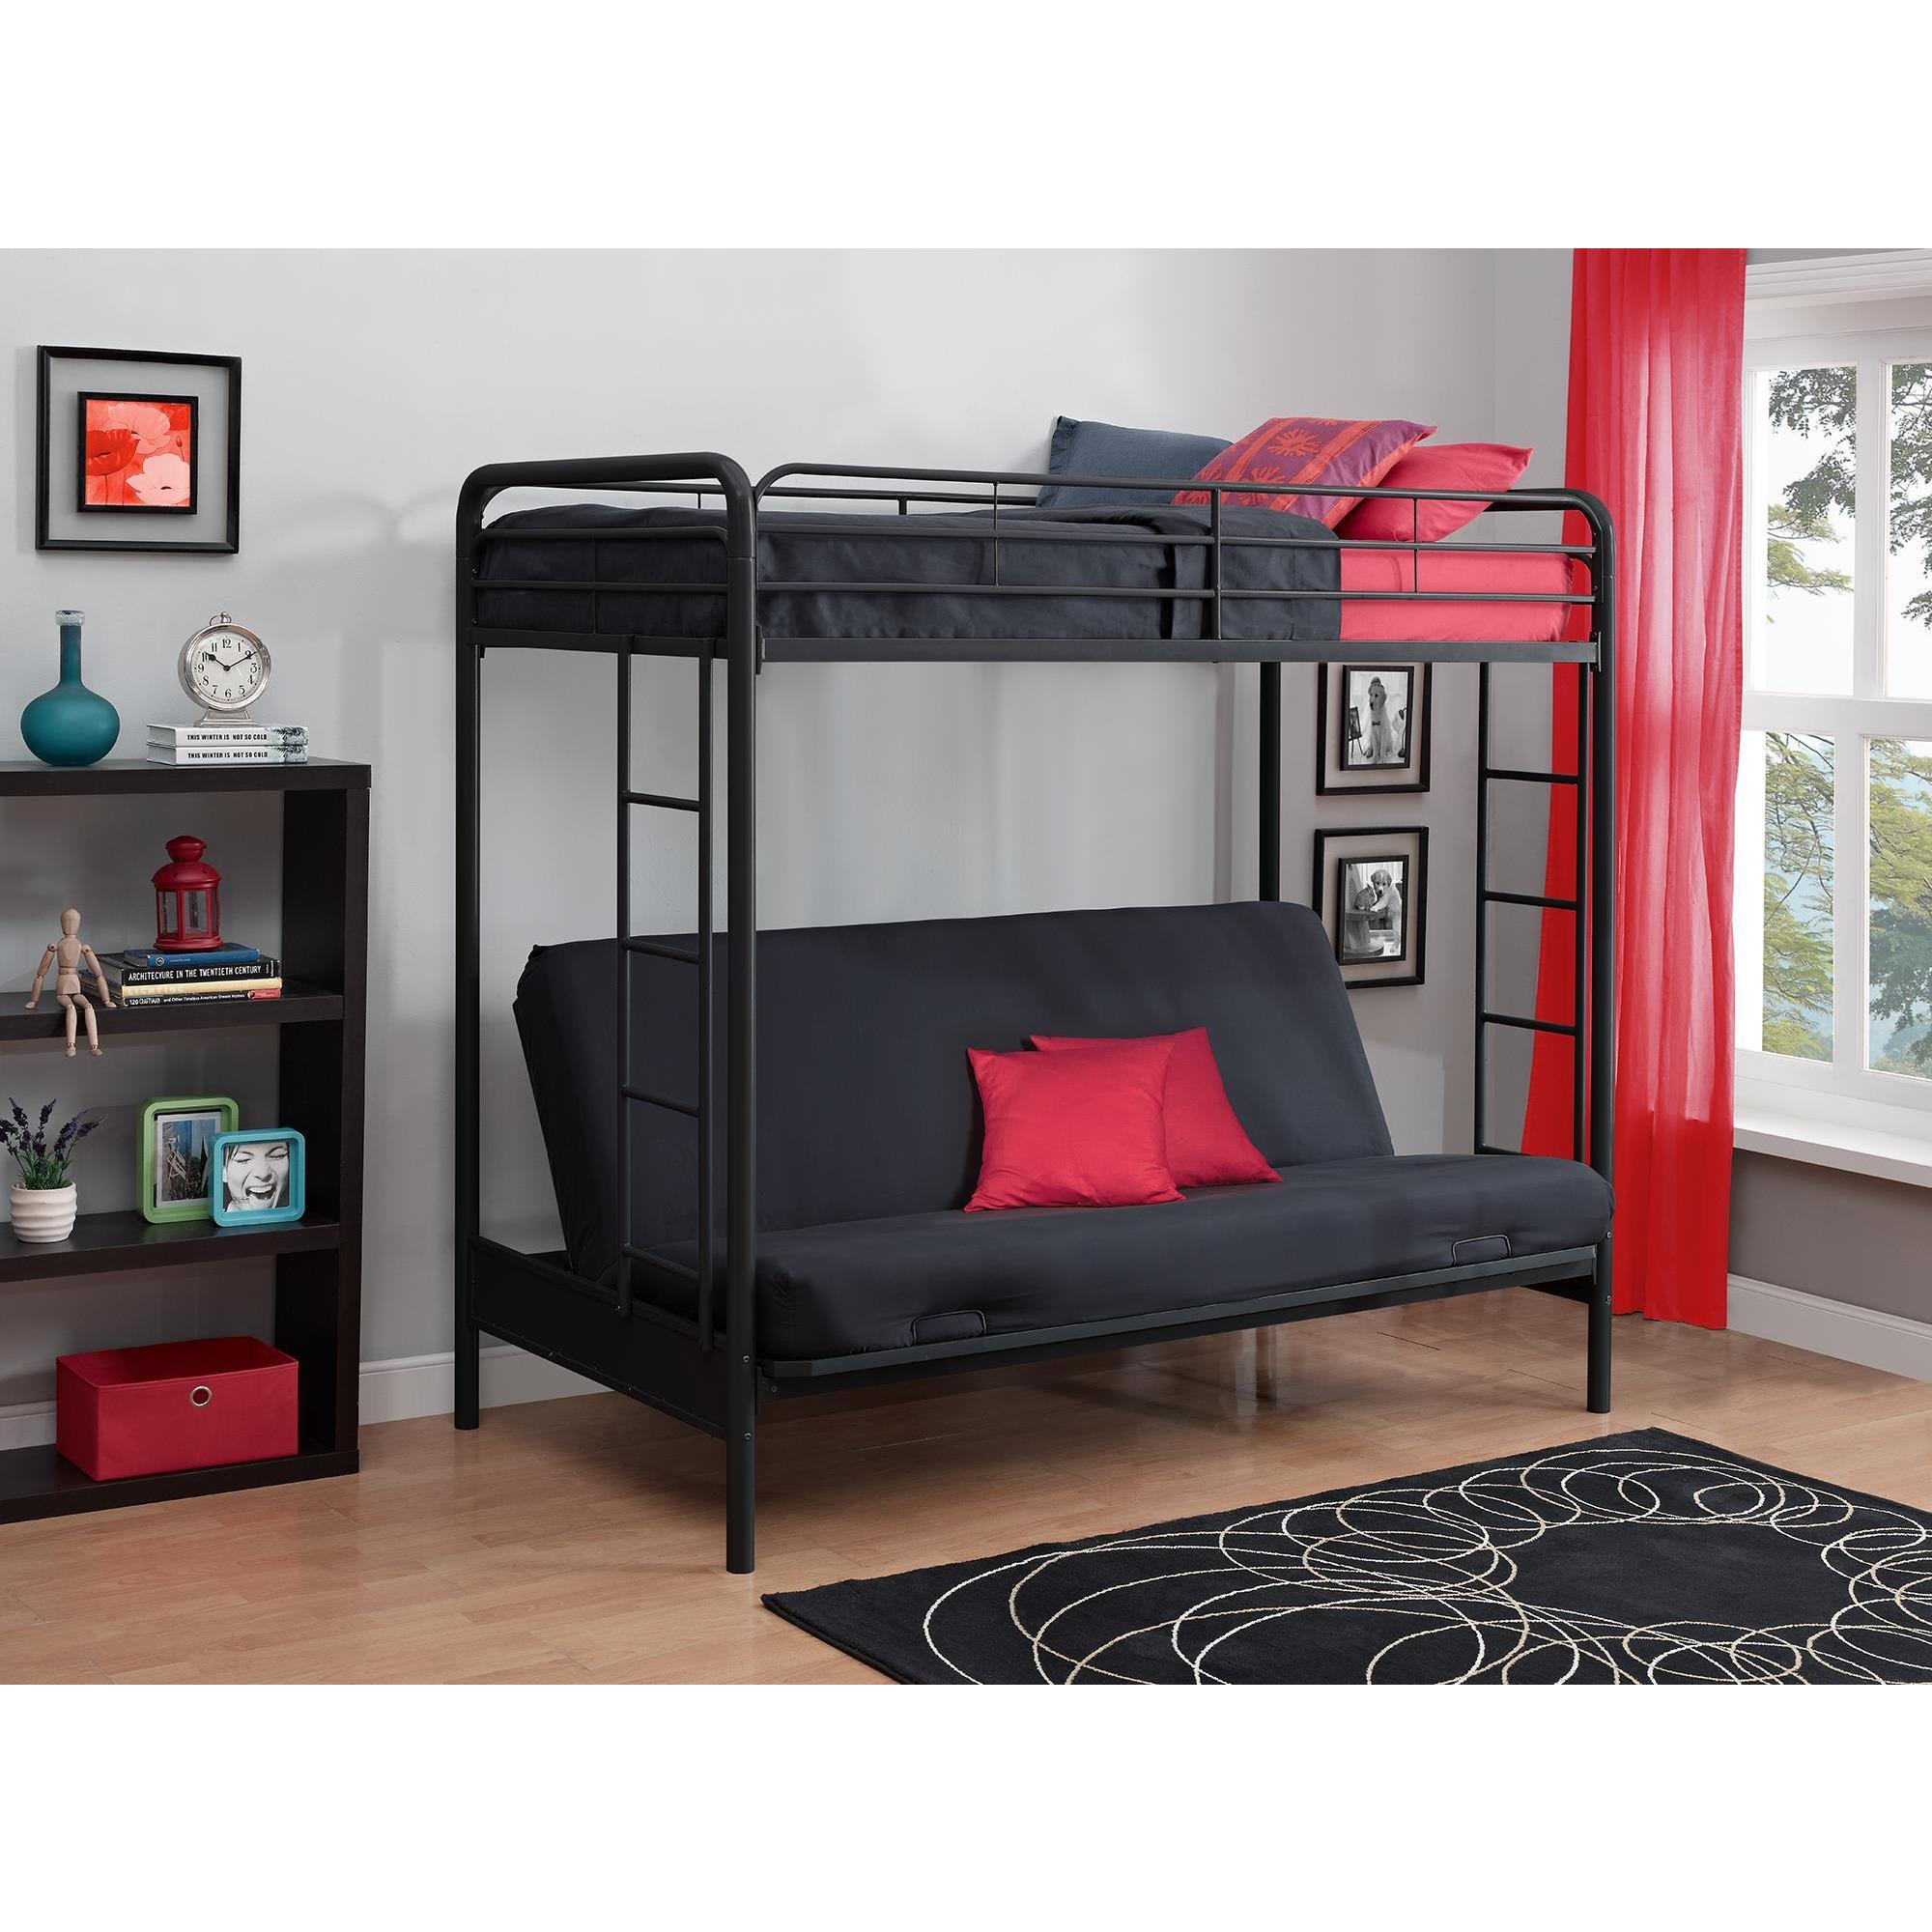 Shop Dhp Twin Over Futon Black Metal Bunk Bed Free Shipping Today